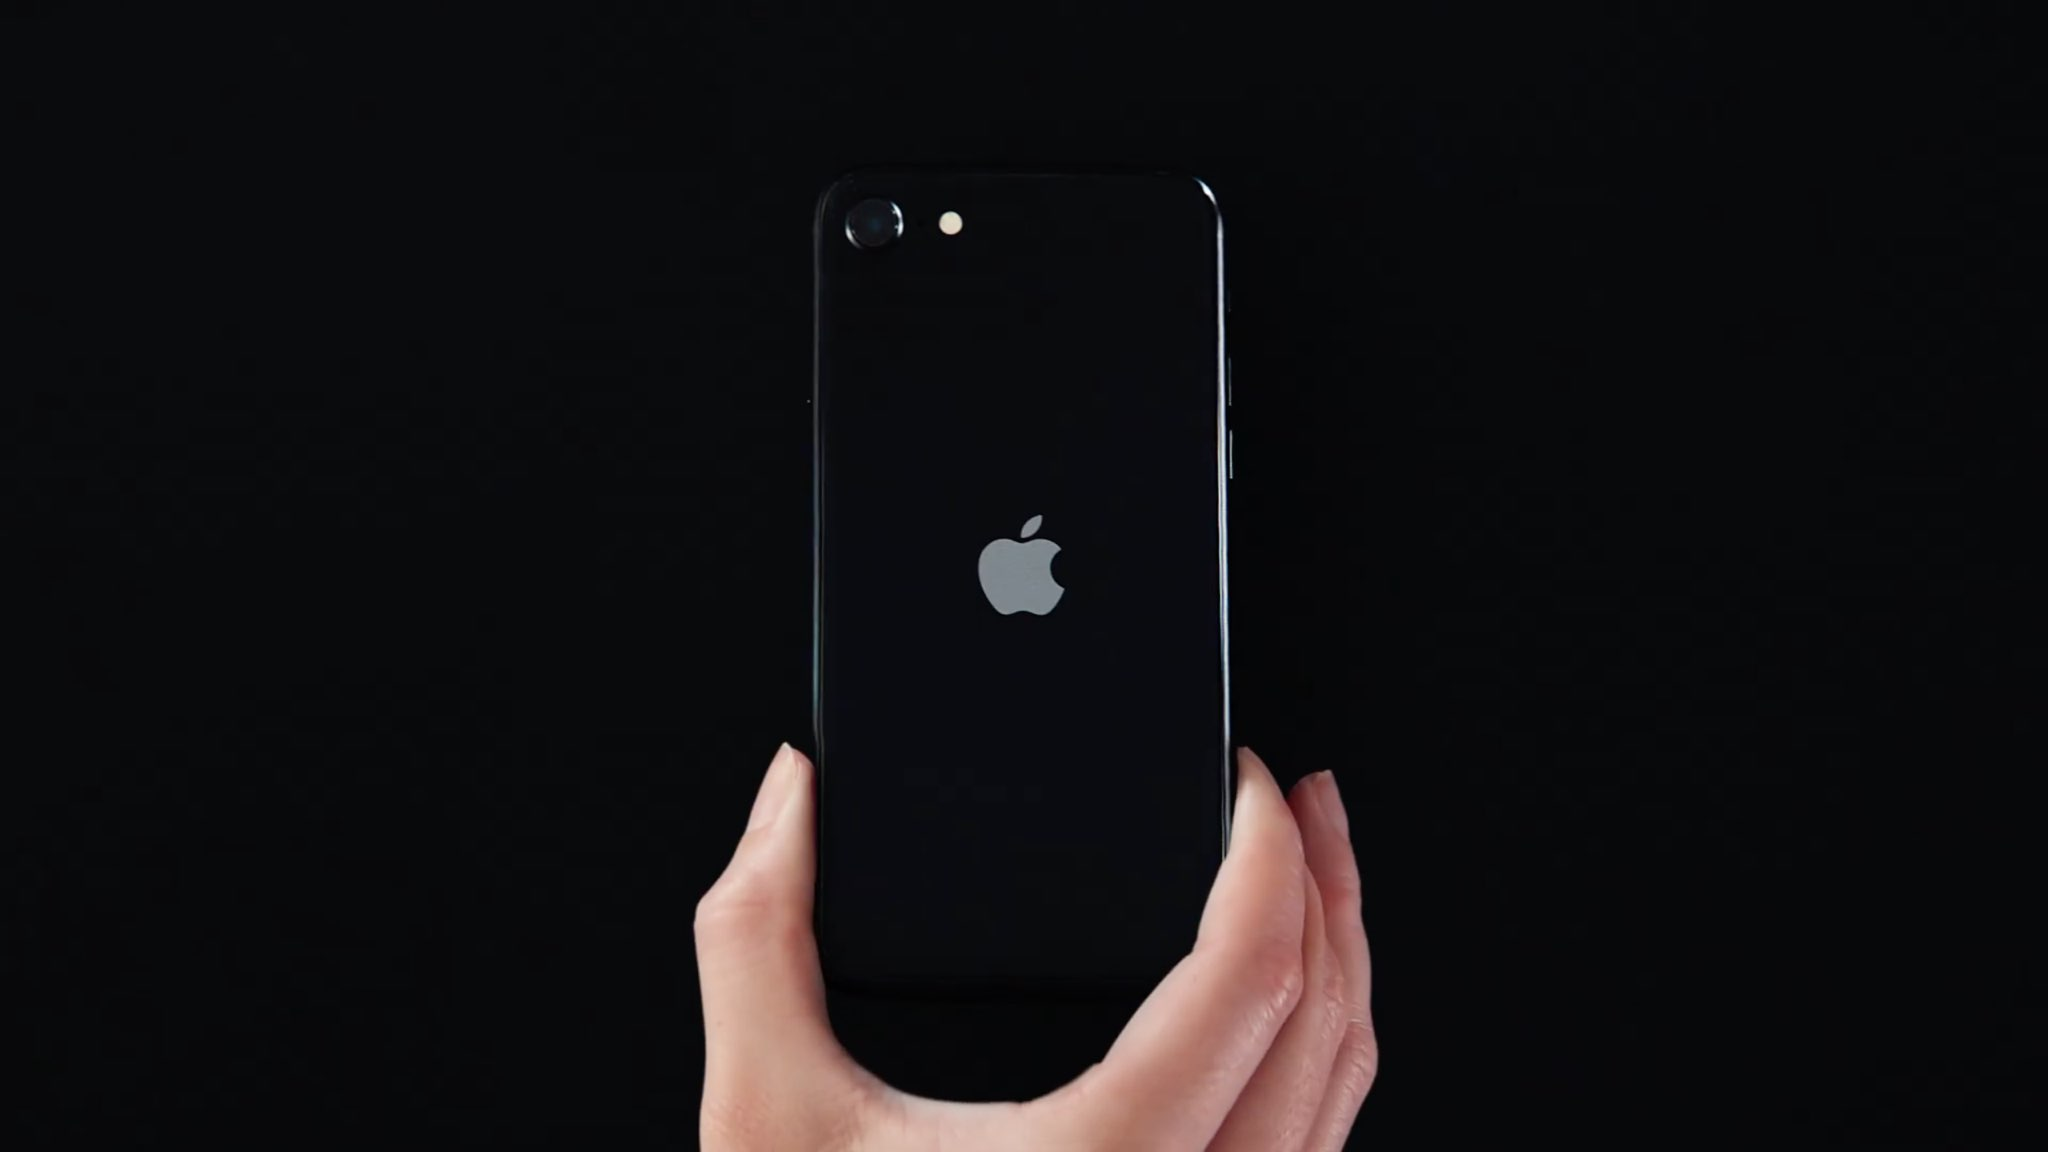 A still from Apple's commercial for the iPhone SE showing a hand laying a matte black iPhone SE on an all-black surface